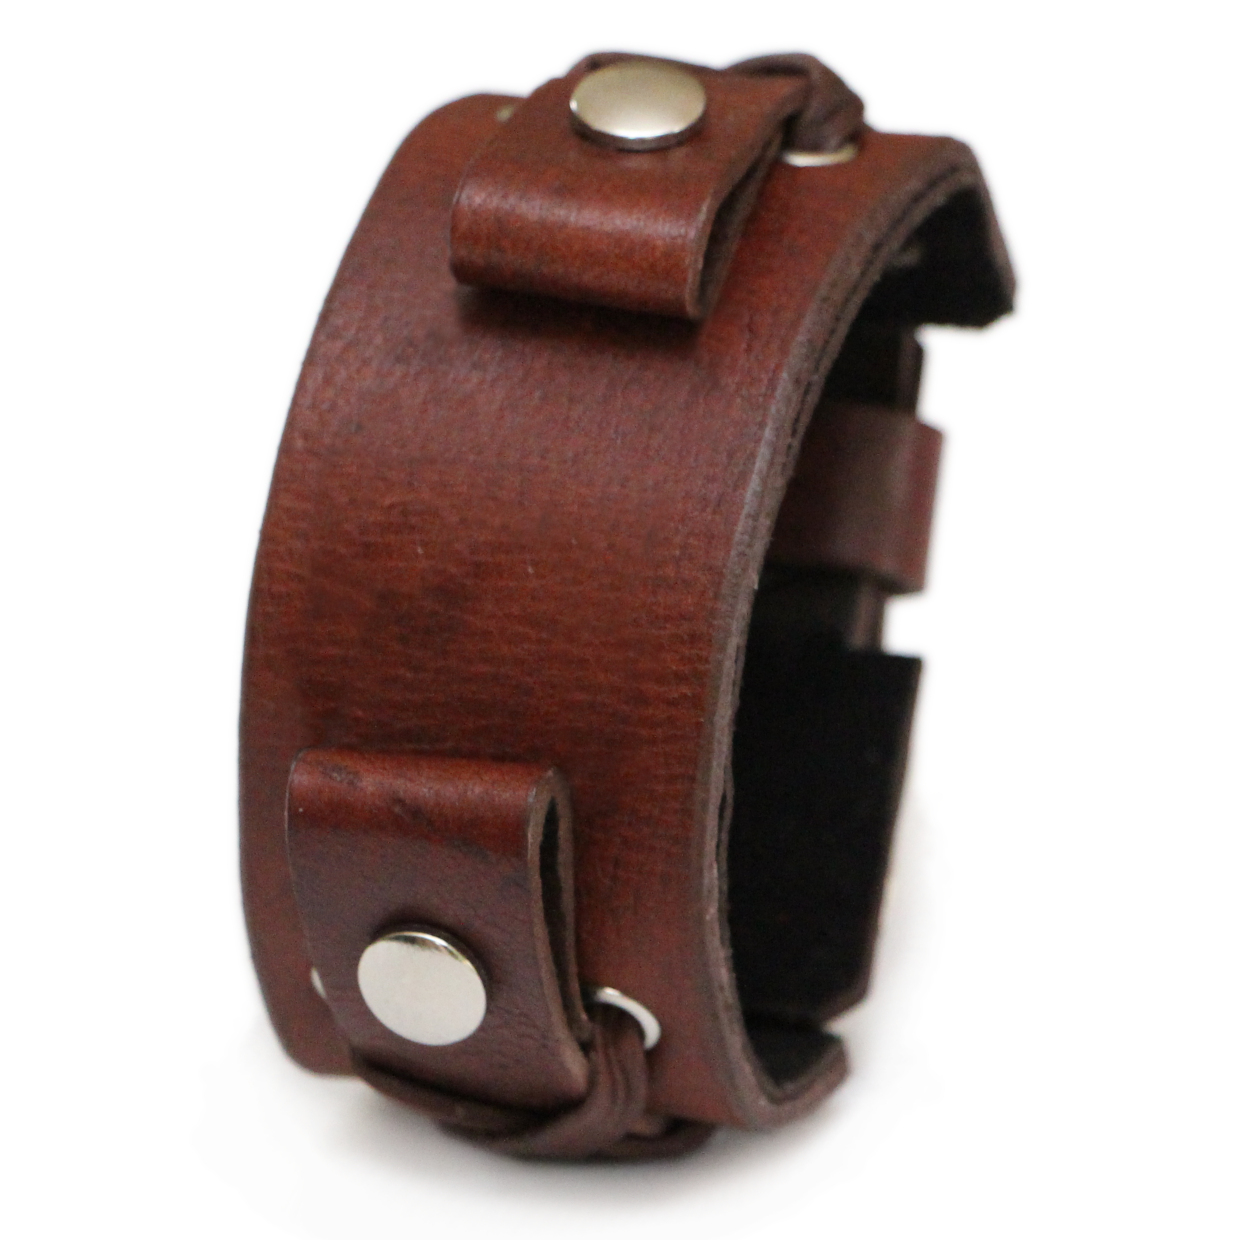 Wolverine Watch Strap